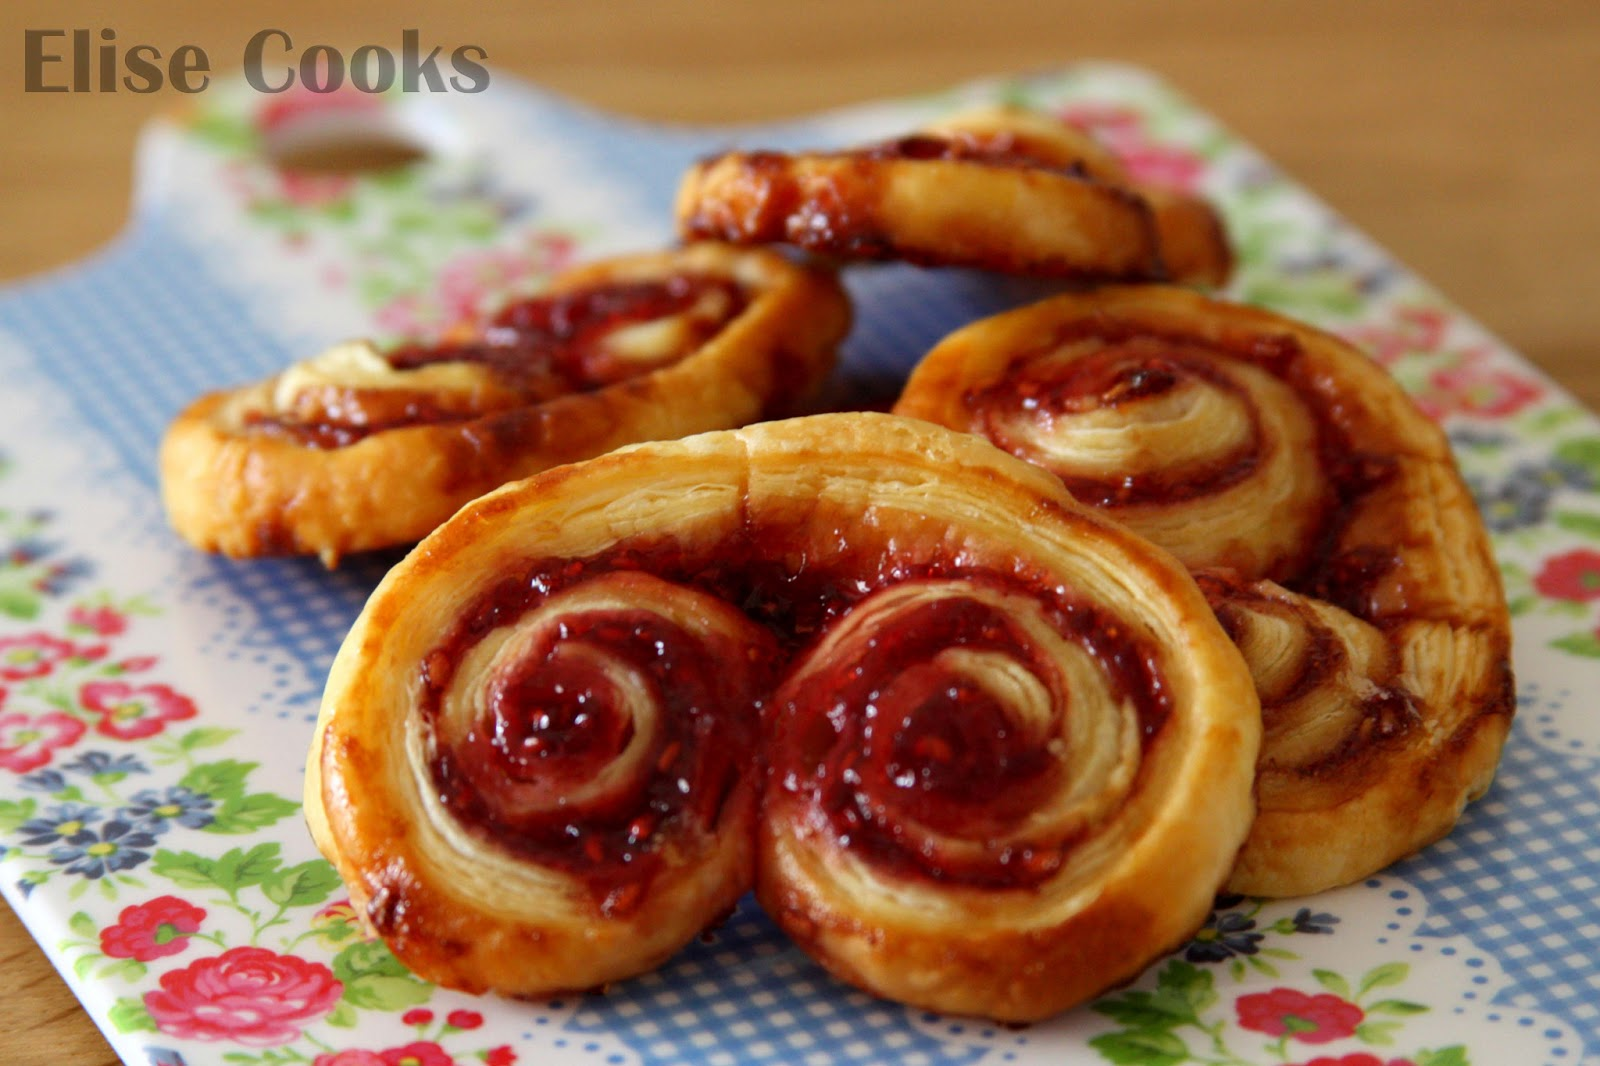 elise cooks palmiers feuillet s la confiture de framboise. Black Bedroom Furniture Sets. Home Design Ideas